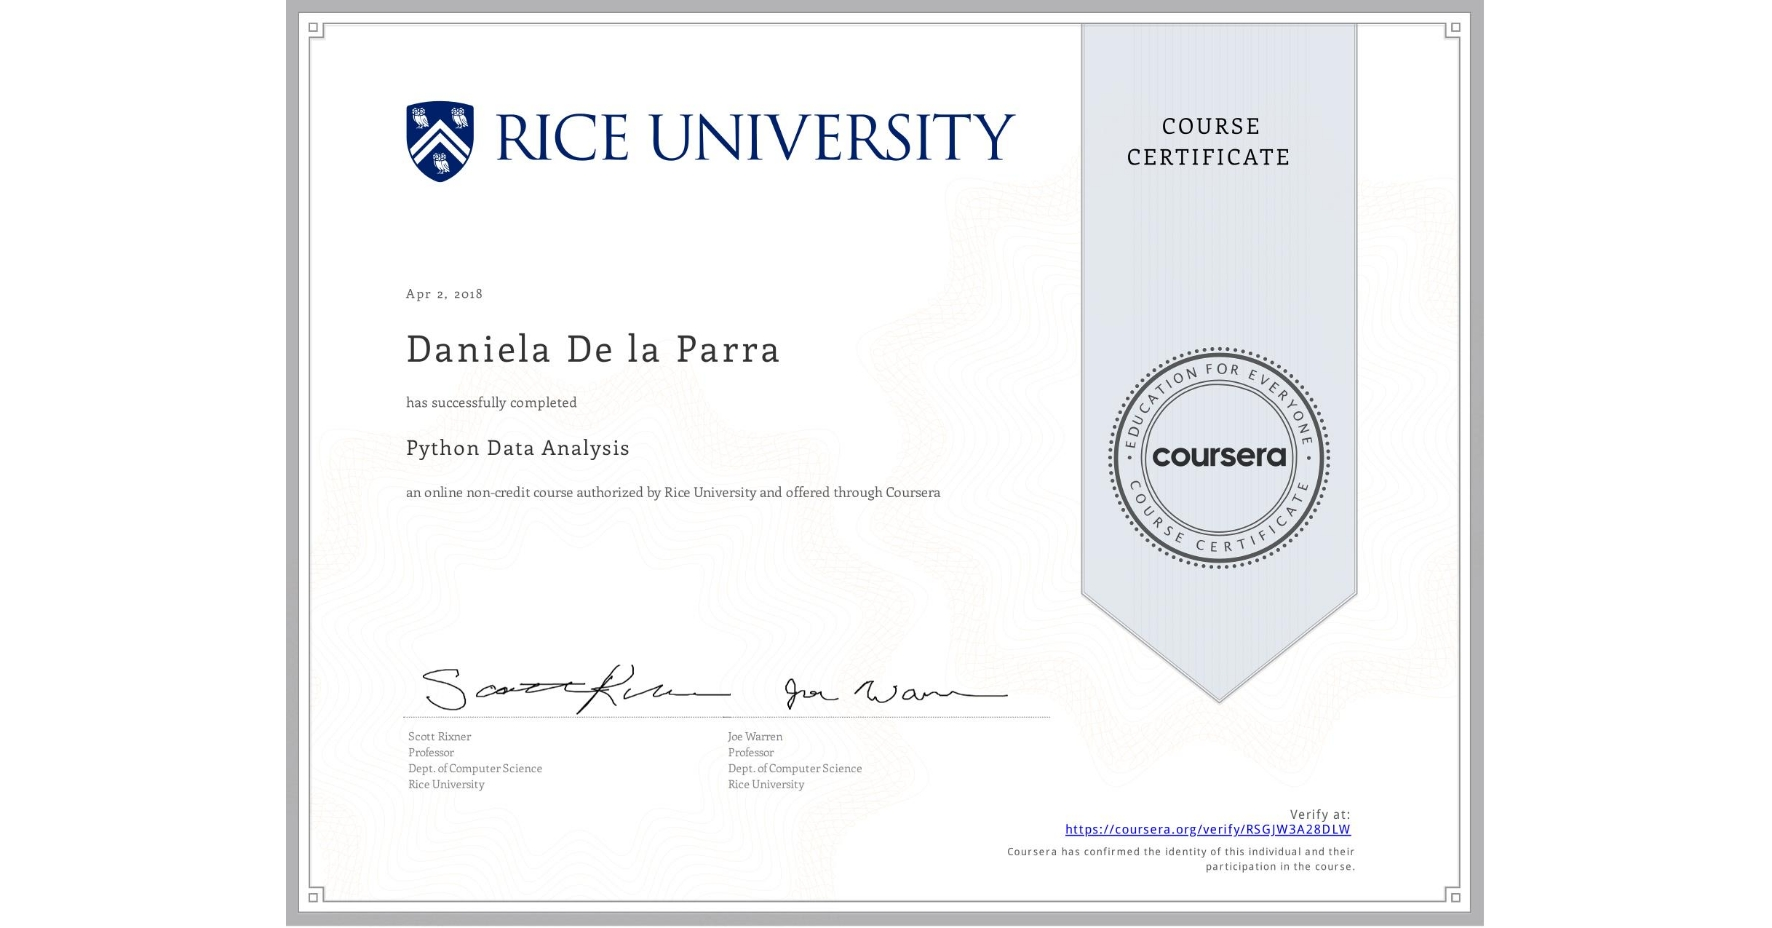 View certificate for Daniela De la Parra, Python Data Analysis, an online non-credit course authorized by Rice University and offered through Coursera